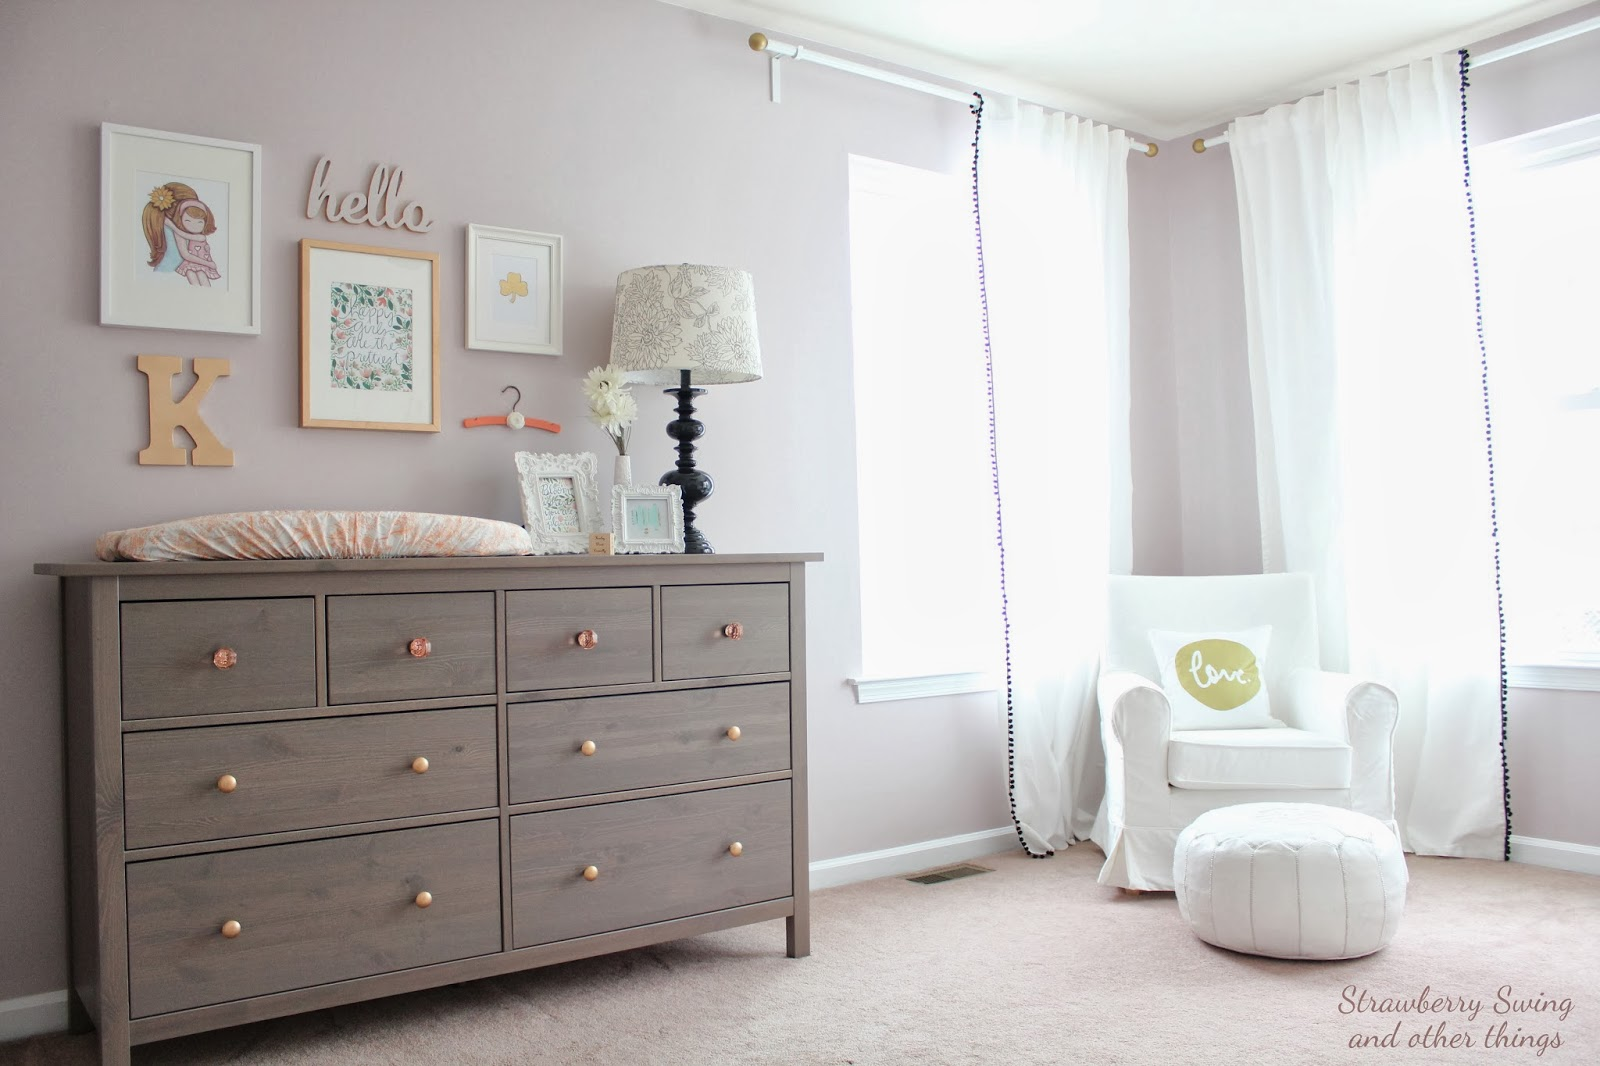 Strawberry swing and other things little room 2 kenley - Dormitorios bebe ikea ...